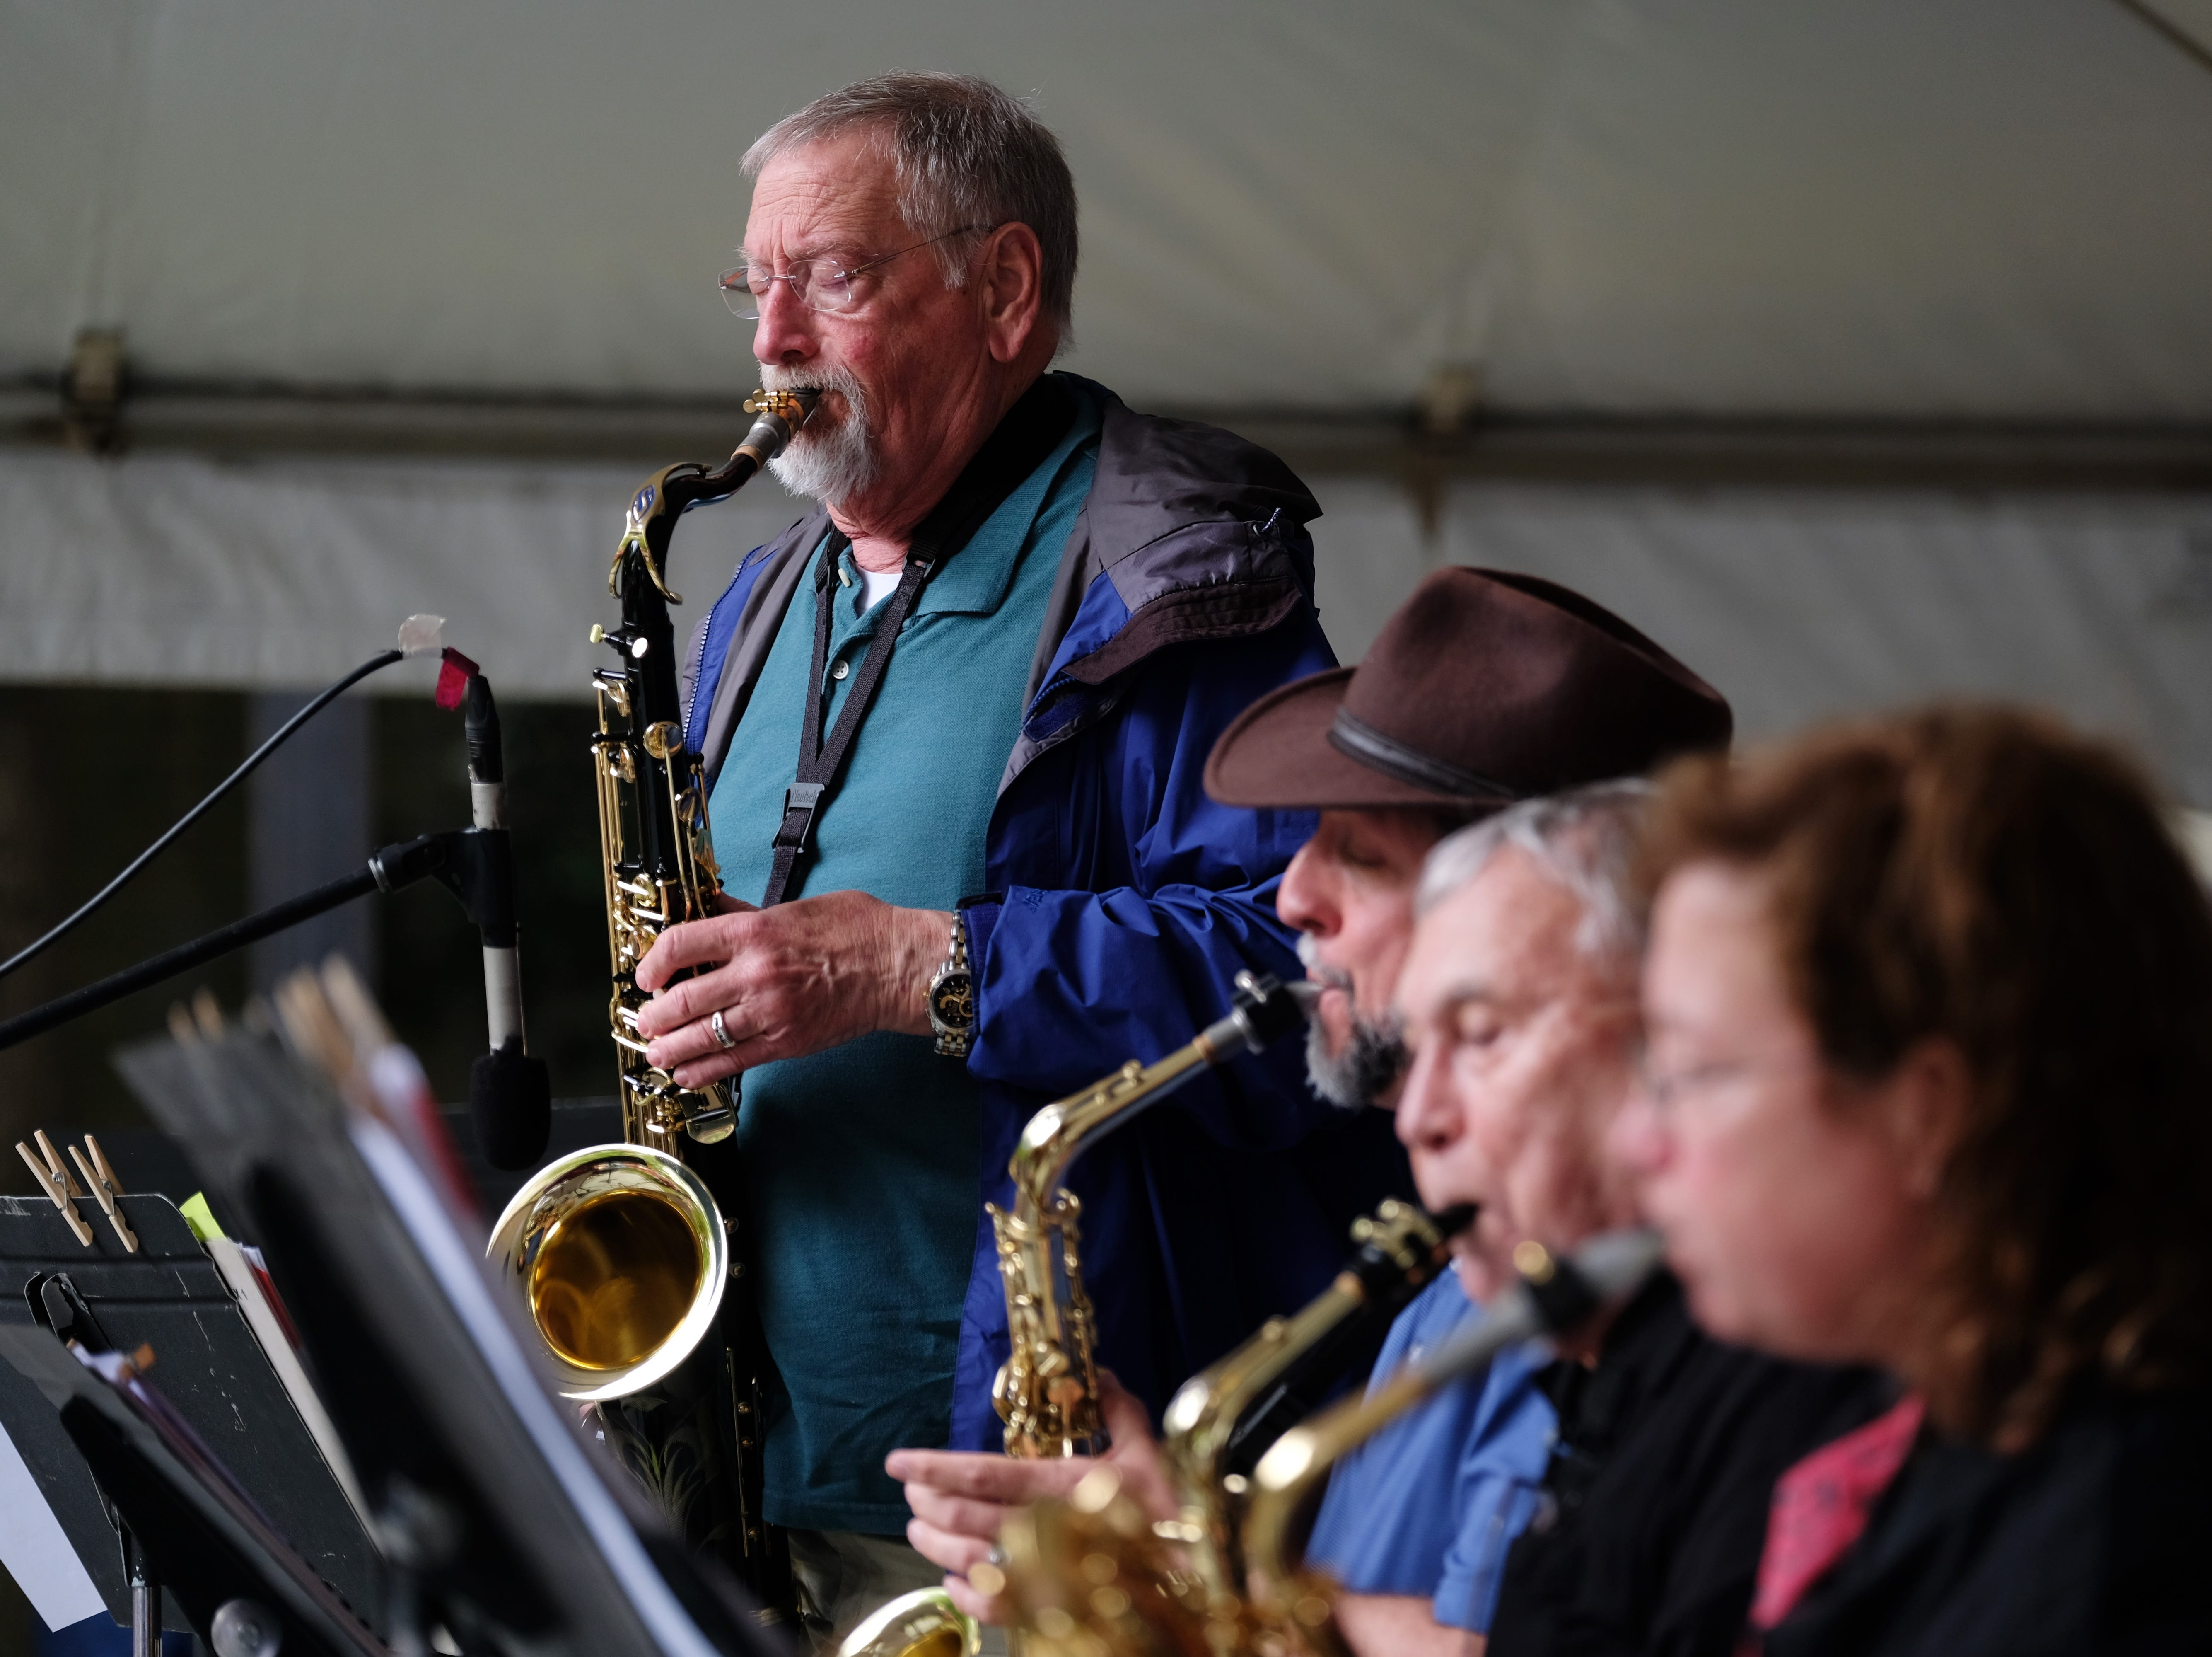 Saxophonist Mike Palmier of the Ensemble Swing Time plays a solo during the Rossini Festival in Knoxville on Saturday, April 13, 2019. 